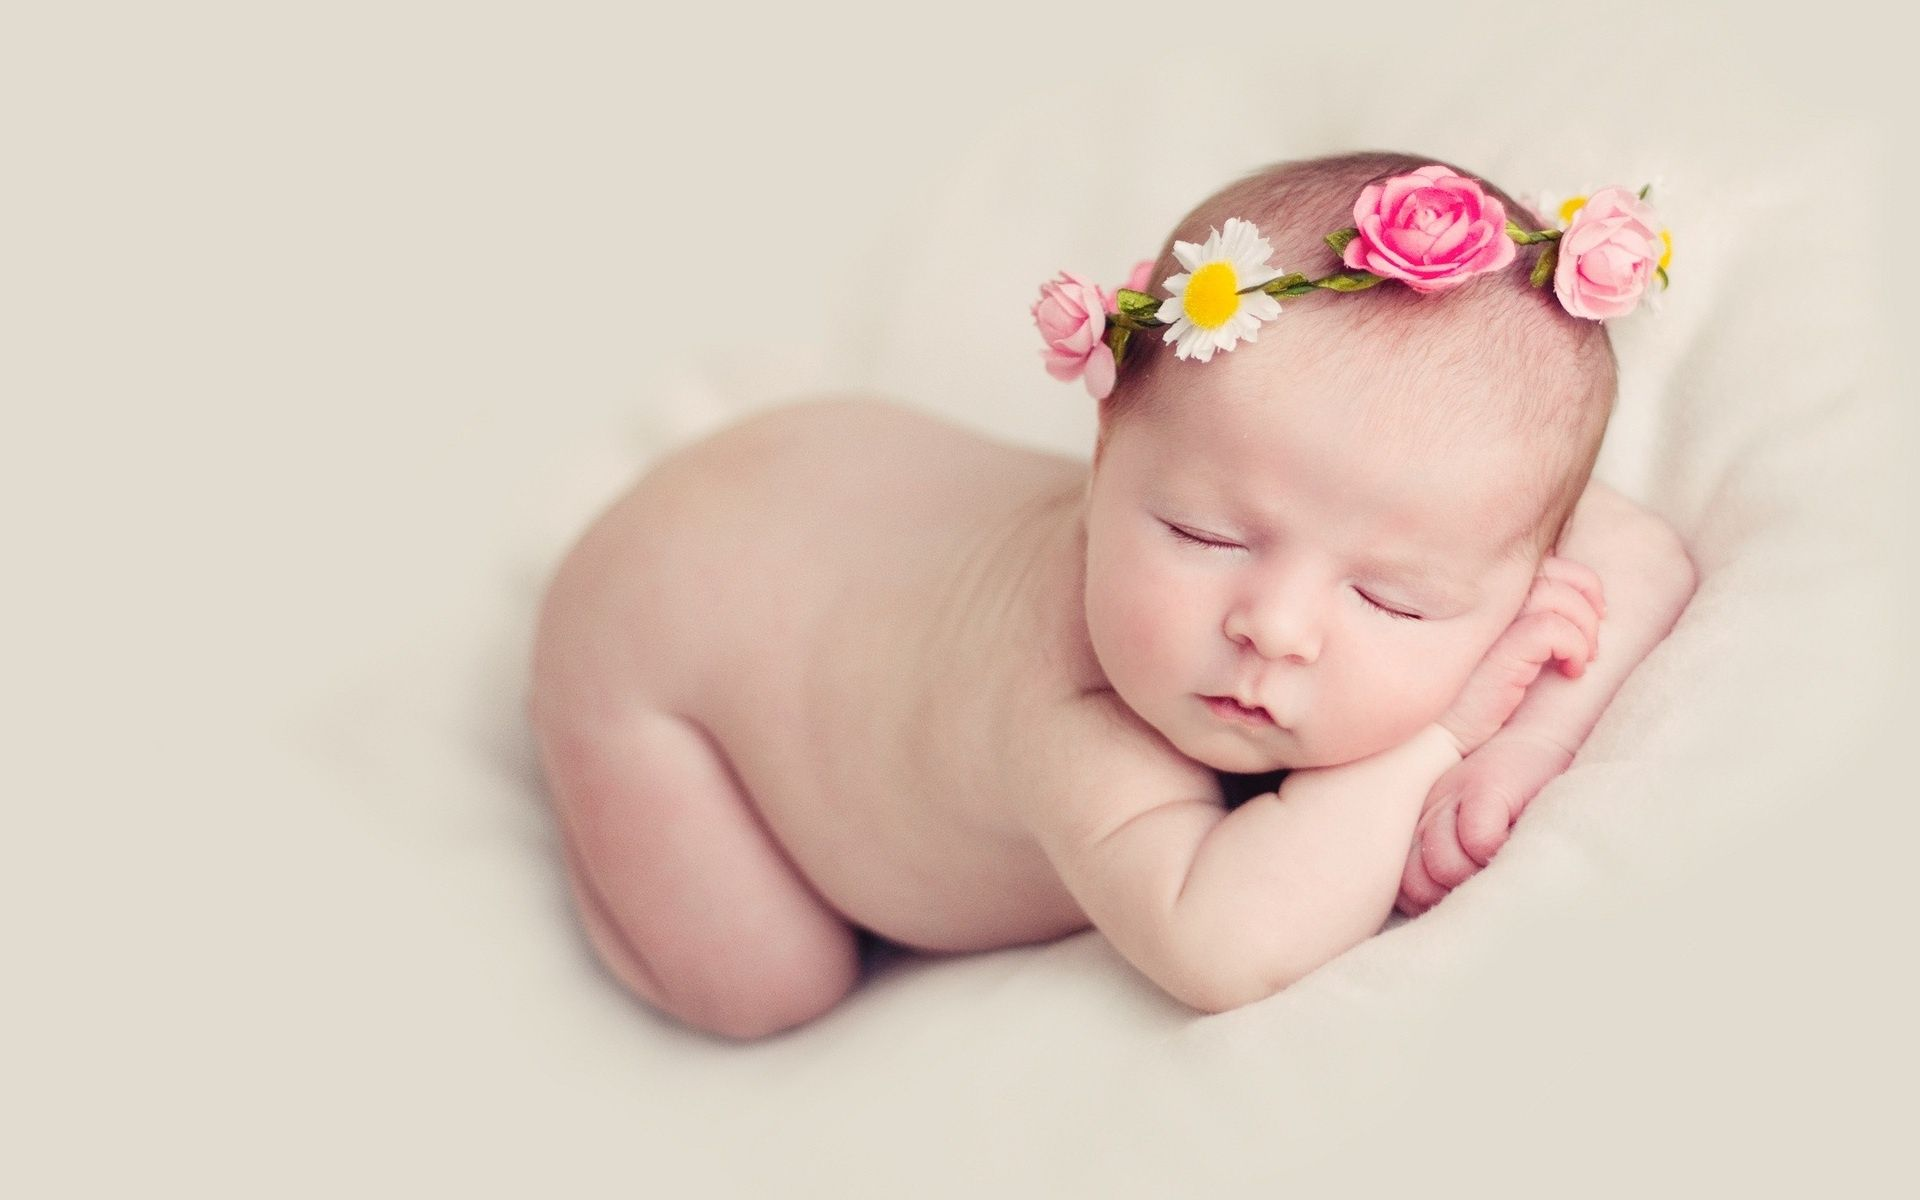 Newborn Baby Images Wallpaper Newborn Baby